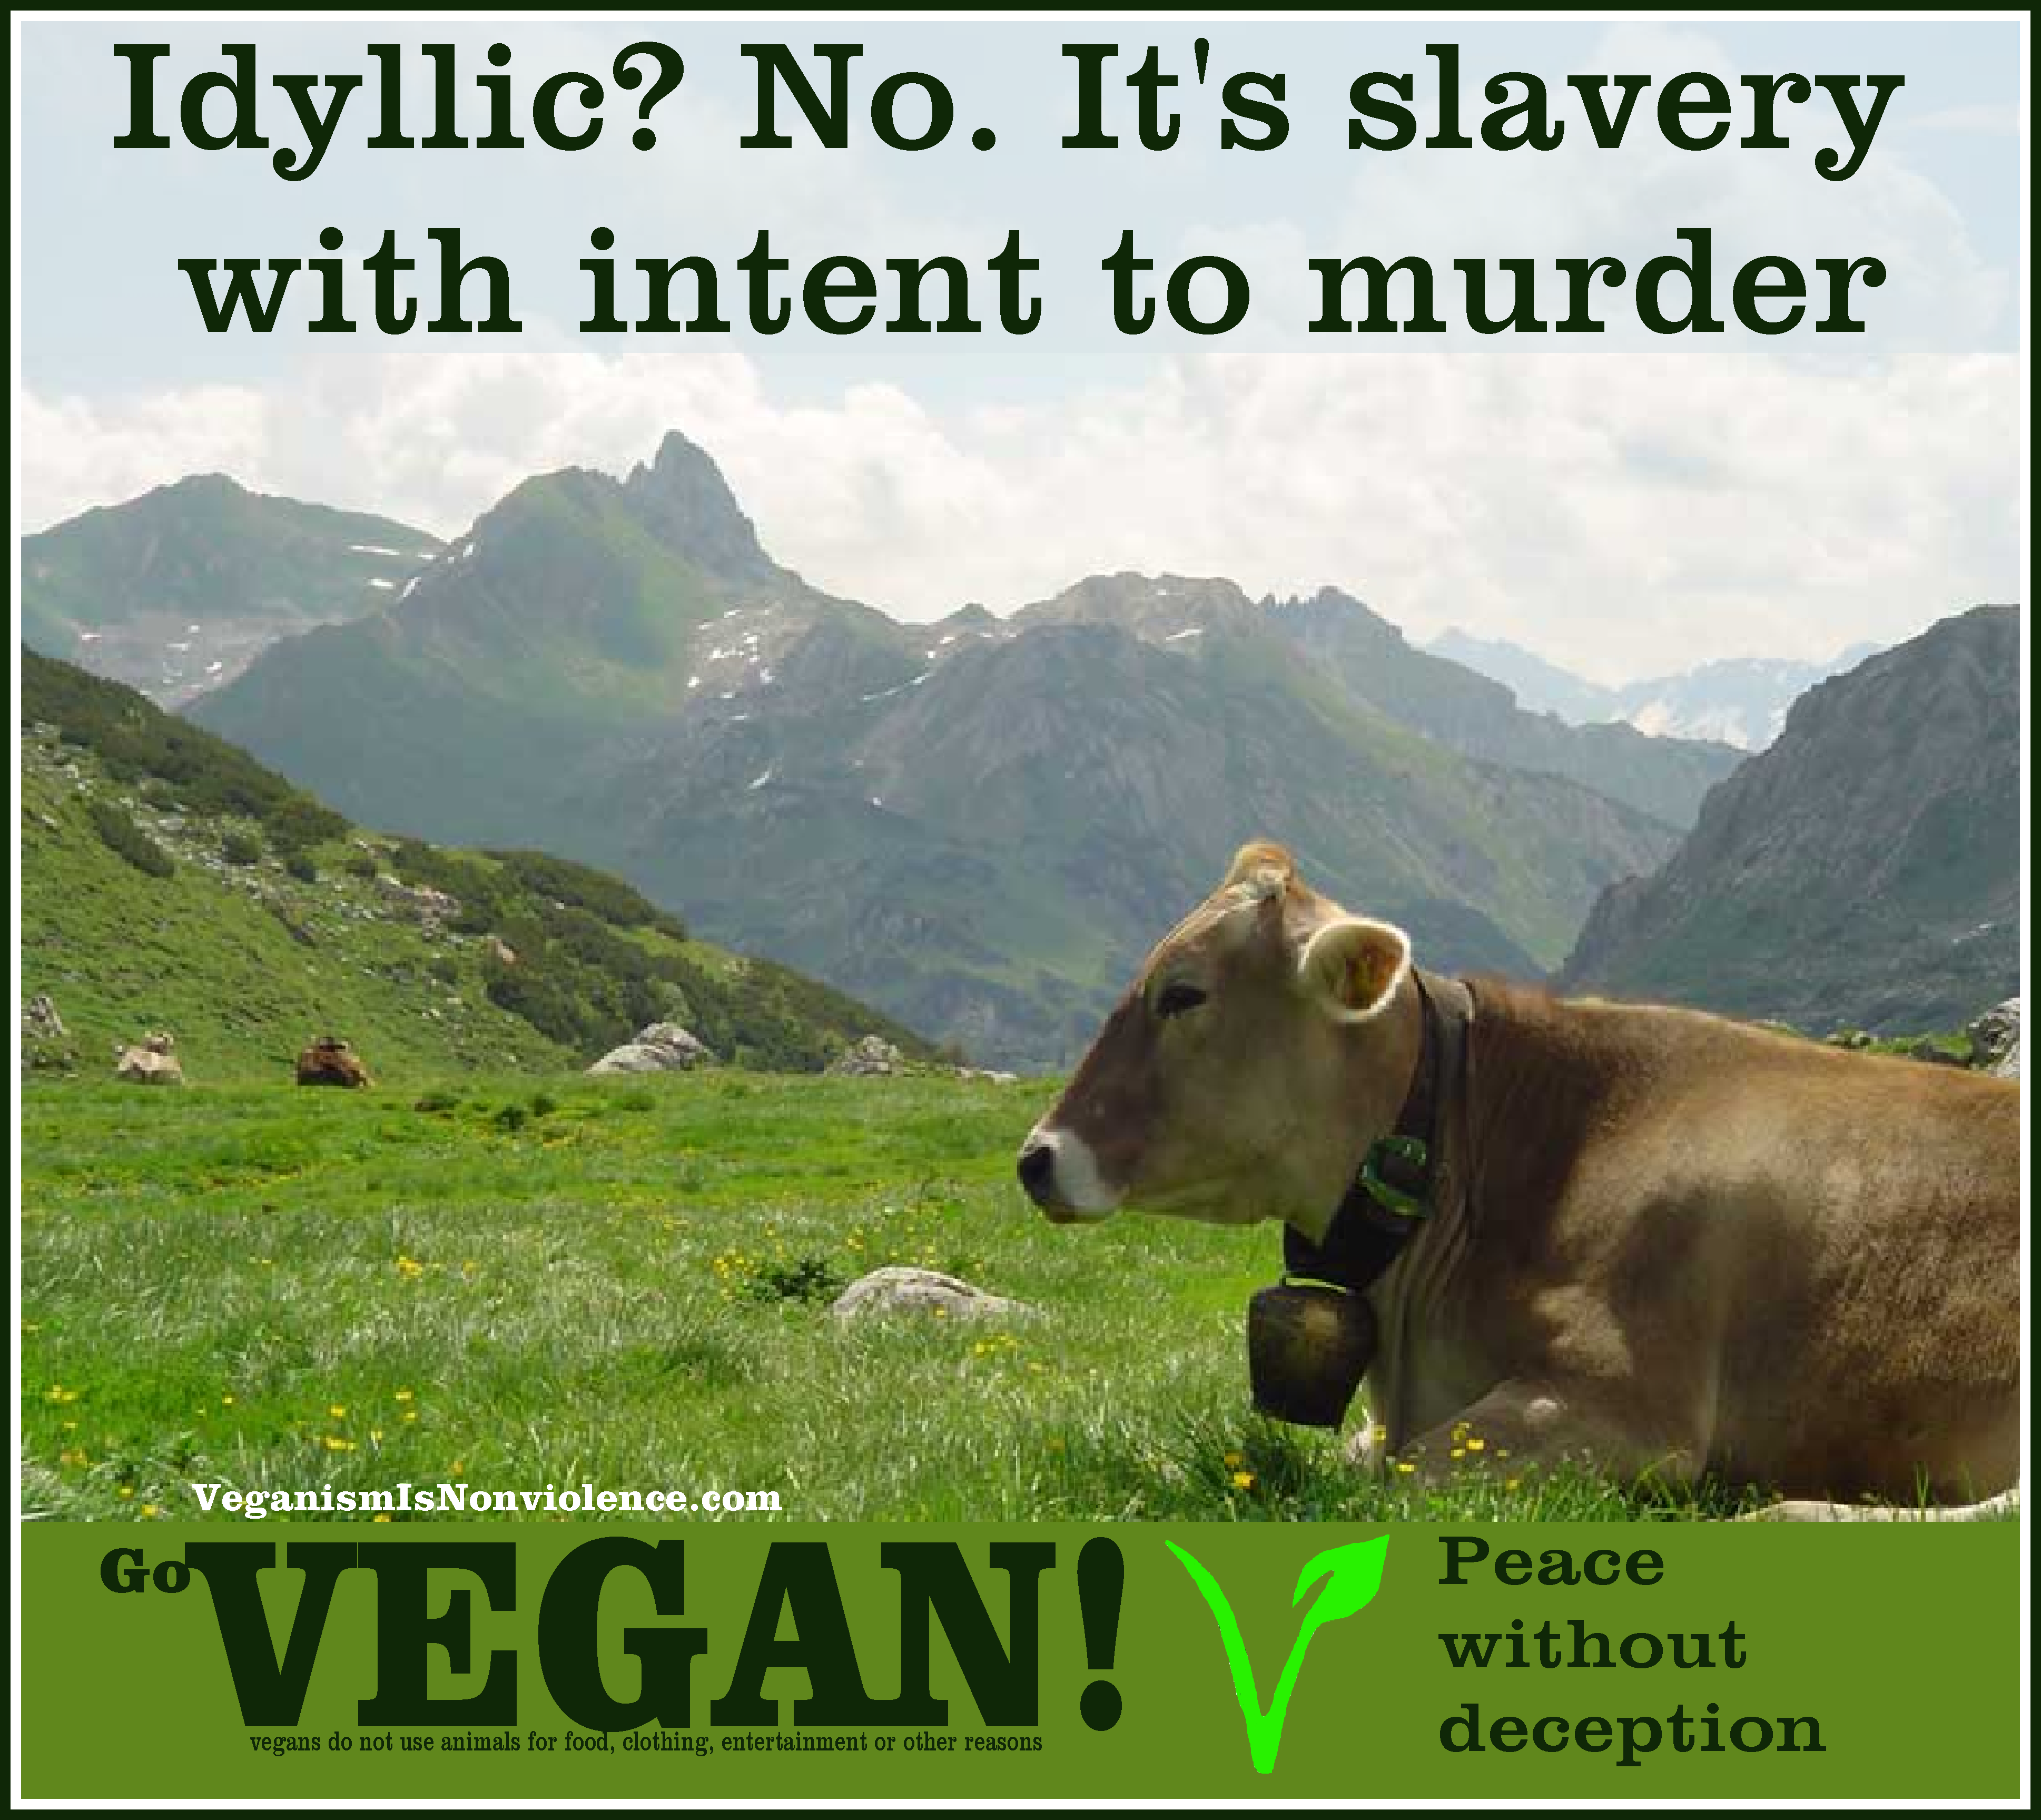 about veganism is nonviolence idyllic nonviolence slavery